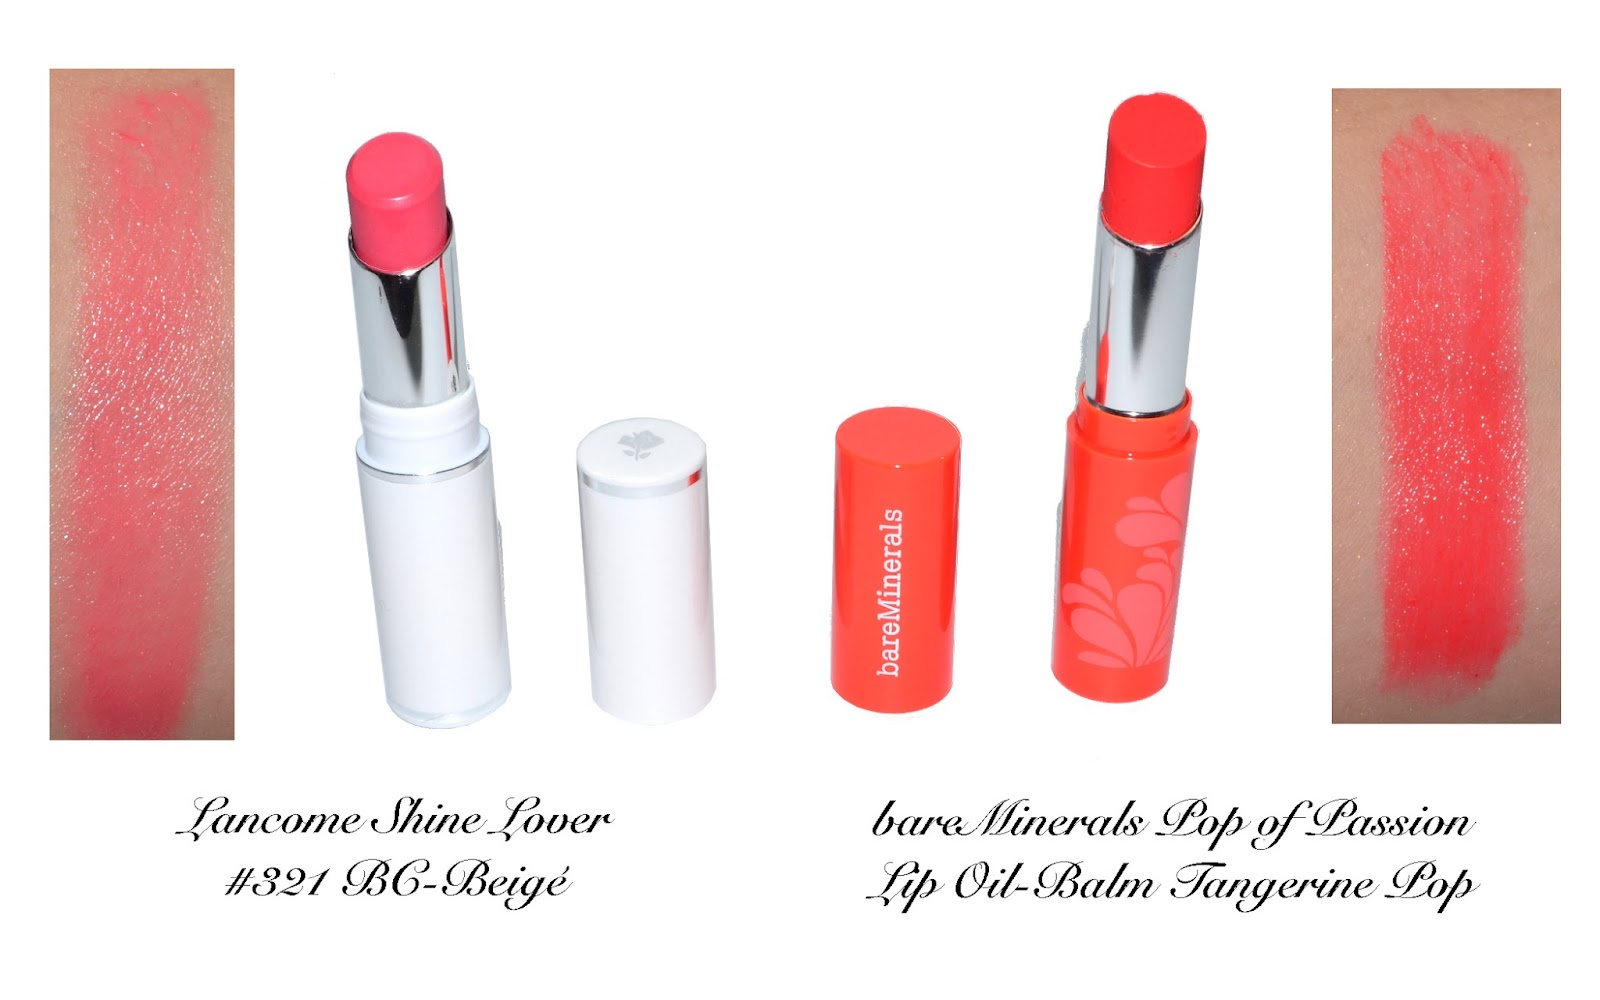 321 shine reviews - Swatches Lancome Shine Lover 321 Bc Beige Bareminerals Pop Of Passion Tangerine Pop